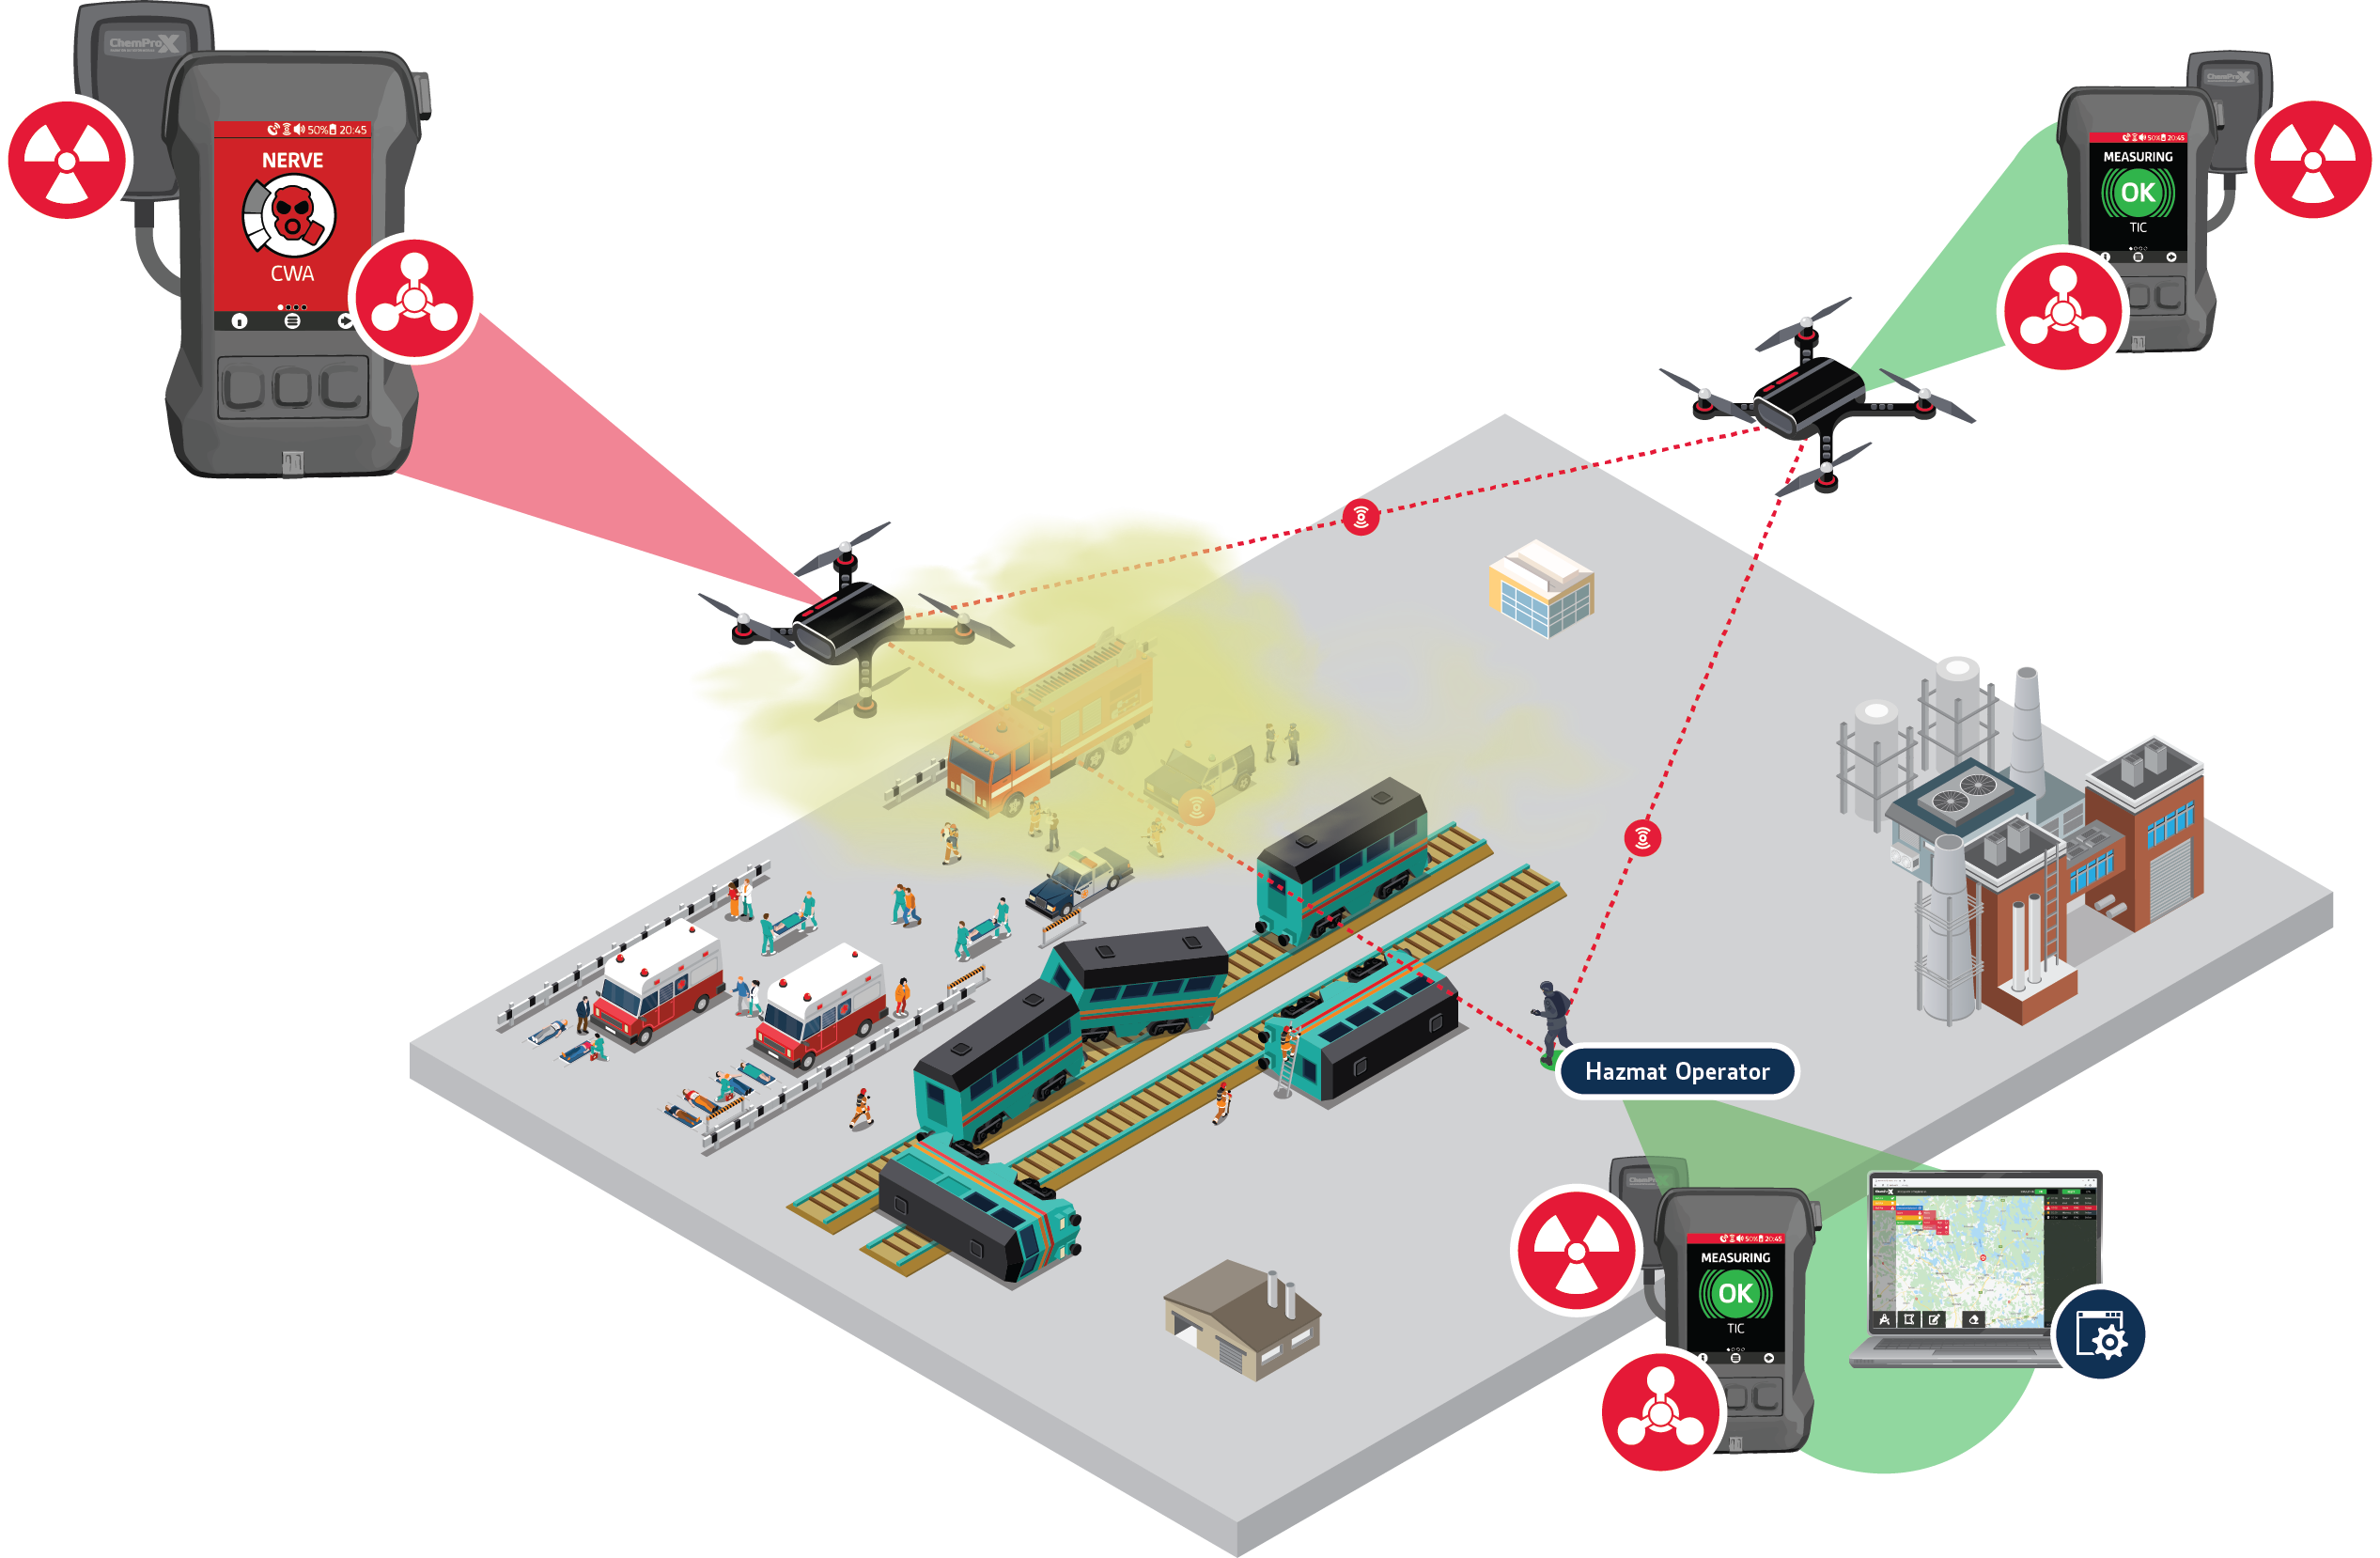 """Example of """"light"""" monitoring network, including Unmanned Air Vehicles (UAVs) and stationary monitoring units in a train derailment incident - CBRN Detection in One Compact Package."""